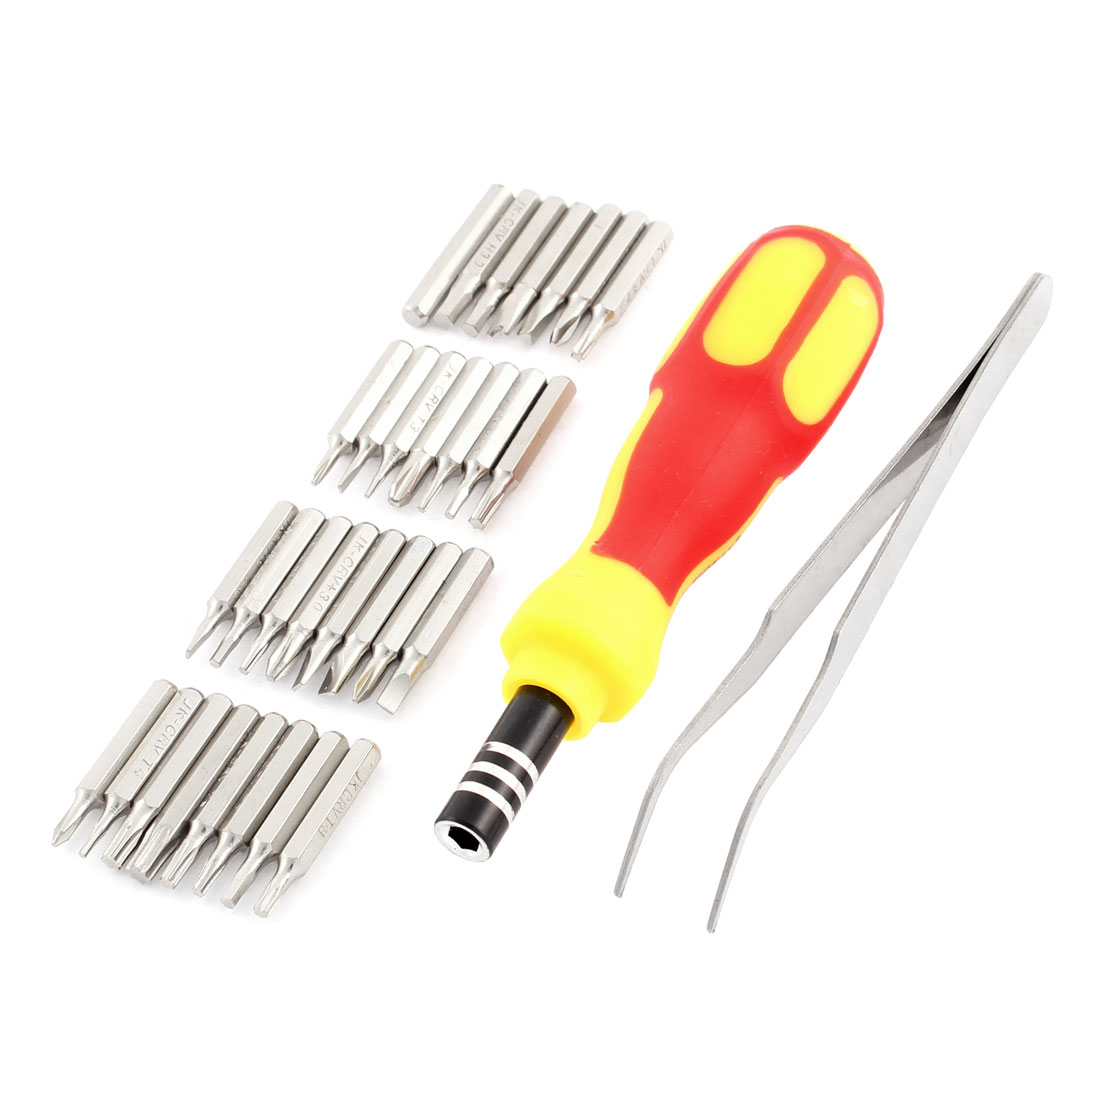 32 in 1 Torx T4 T5 T6 T7 T8 T9 T10 T15 T20 Precision Screwdriver Set for Cell Phone